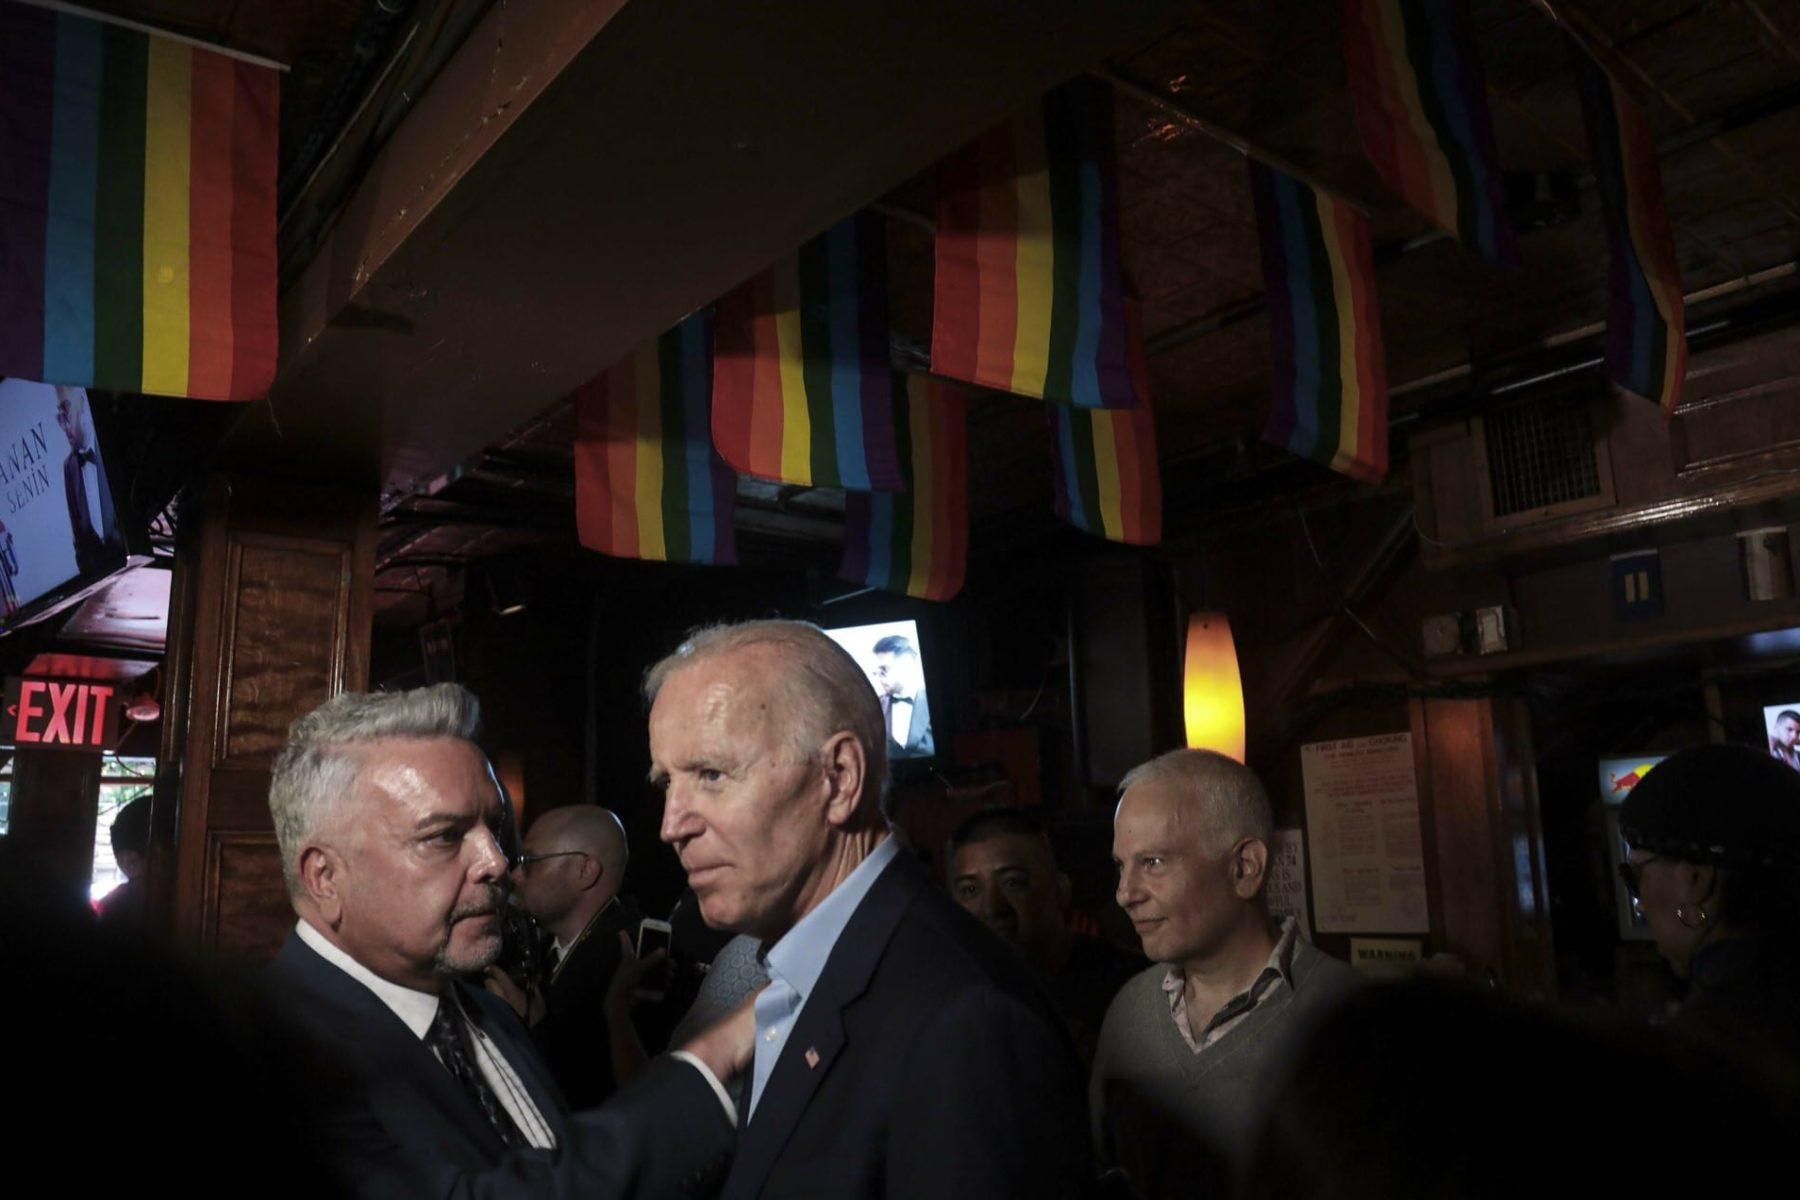 Joe Biden at the Stonewall Inn standing under LGBTQ flags.